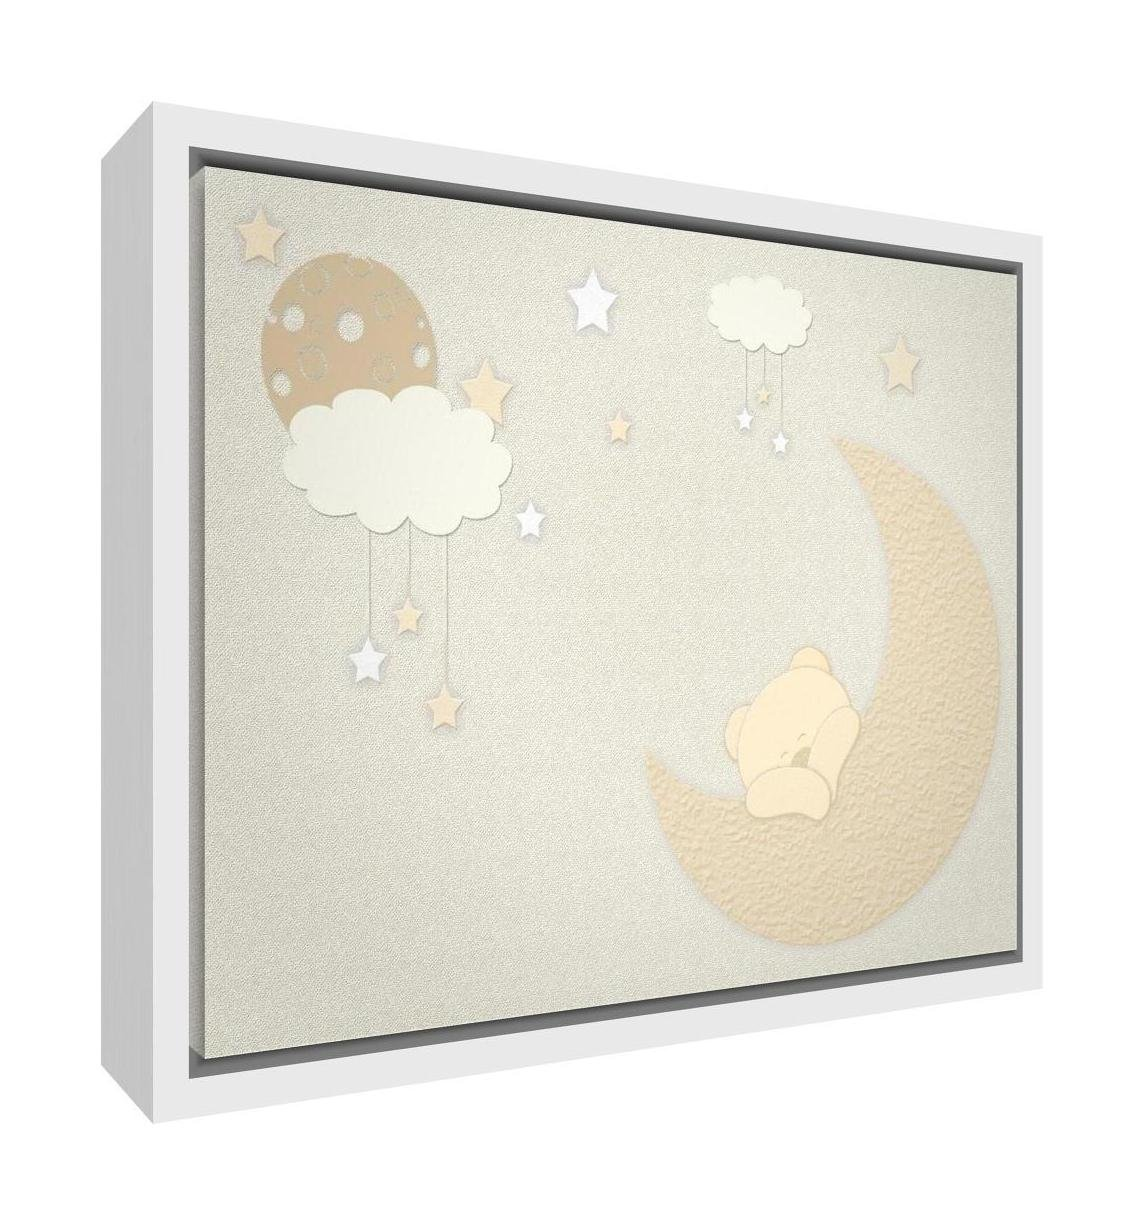 Feel Good Art Eco-Printed and Framed Nursery Canvas with solid White Wooden Frame (64 x 44 x 3 cm, Large, Soft Pink, Bear moon) BEARMOON-1624FCWHT-13